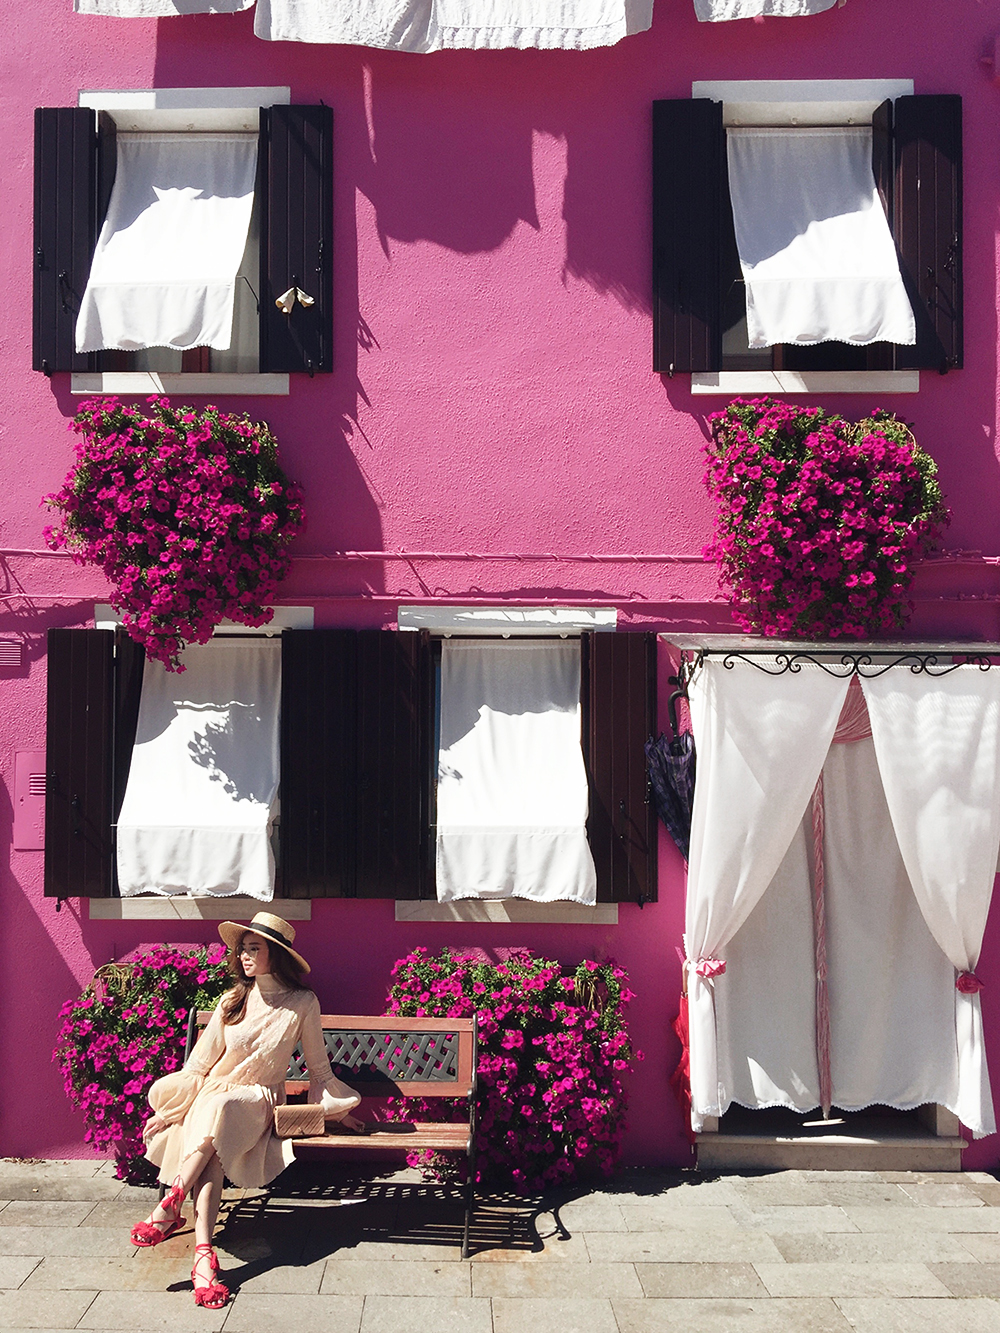 Burano Island Pale Division By Willabelle Ong